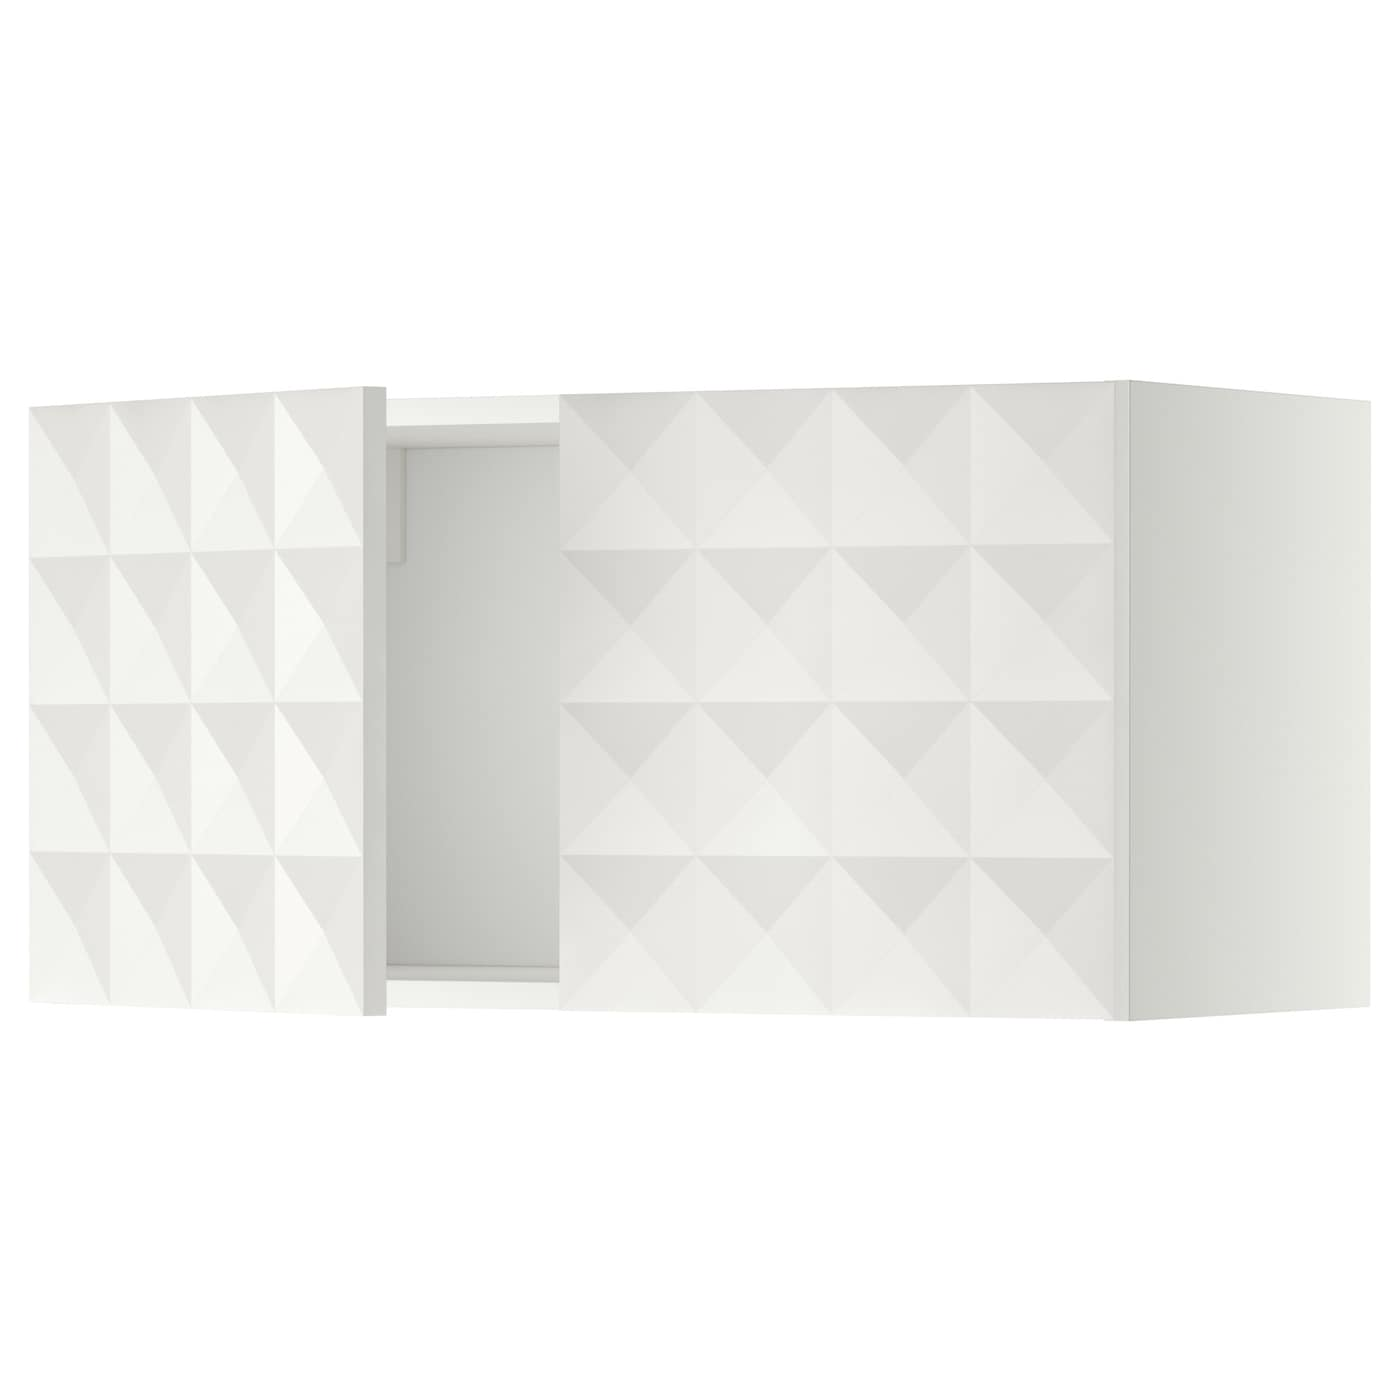 Ikea Kitchen Cabinet Construction: METOD Wall Cabinet With 2 Doors White/herrestad White 80 X